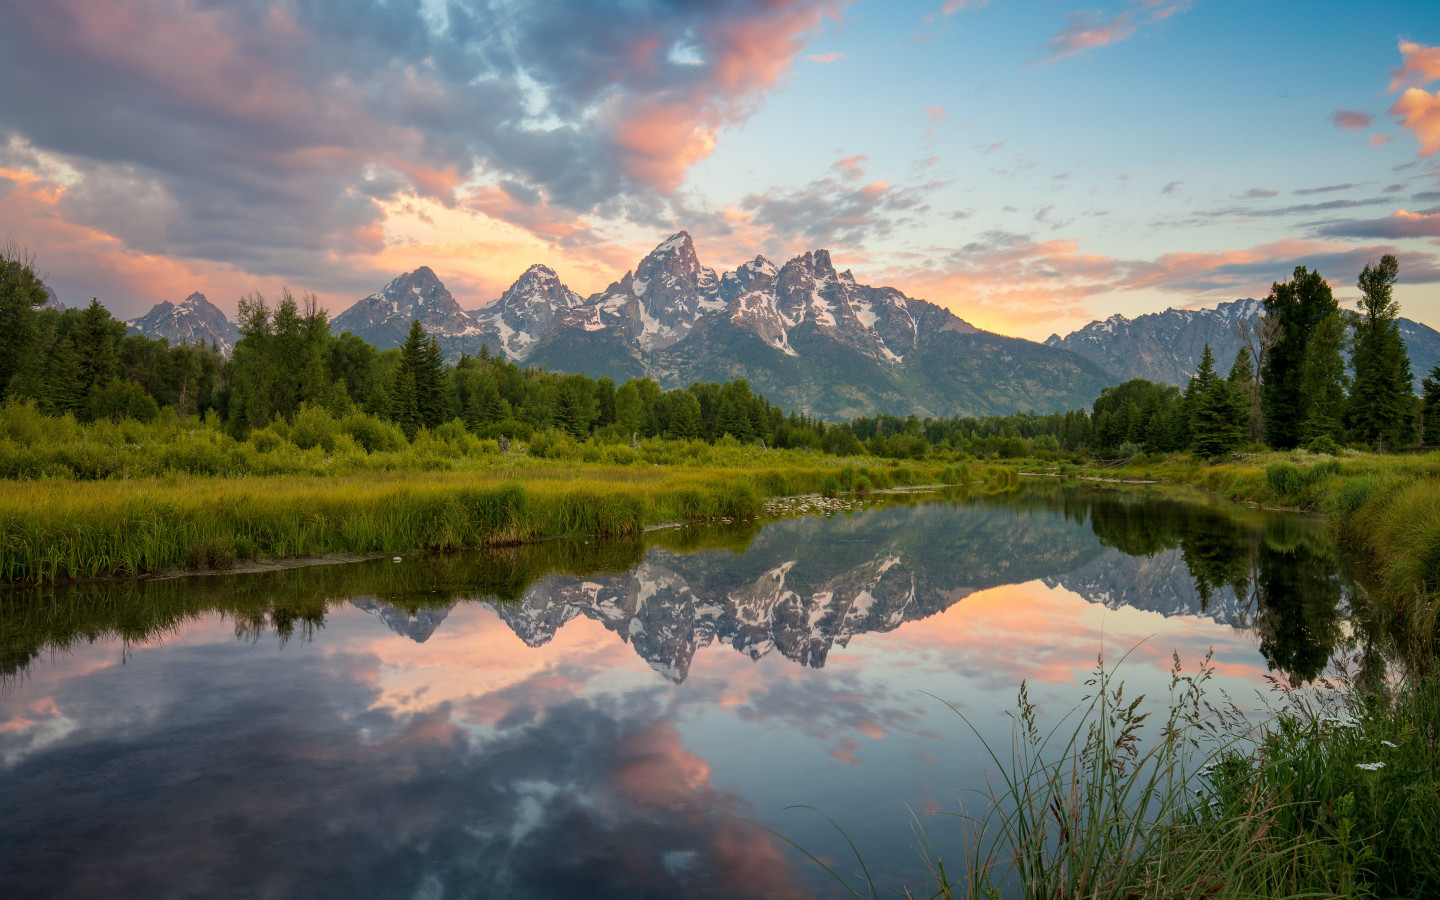 Grand Teton National Park | 1440x900 wallpaper